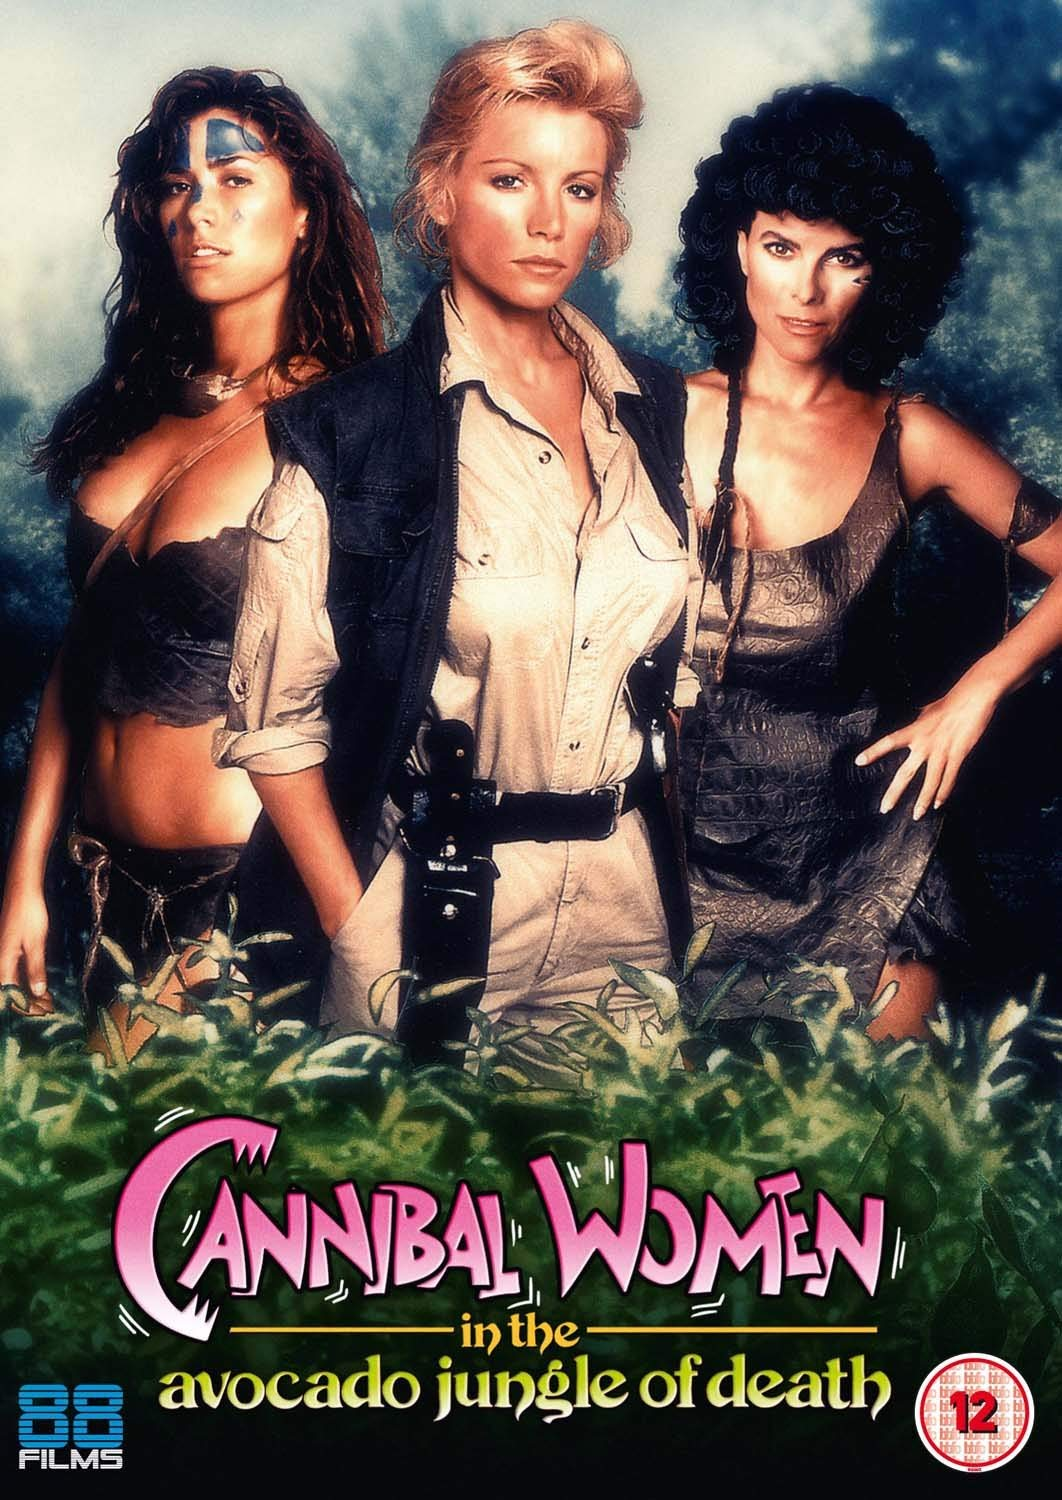 Cannibal Women In The Avocado Jungle Of Death (DVD)